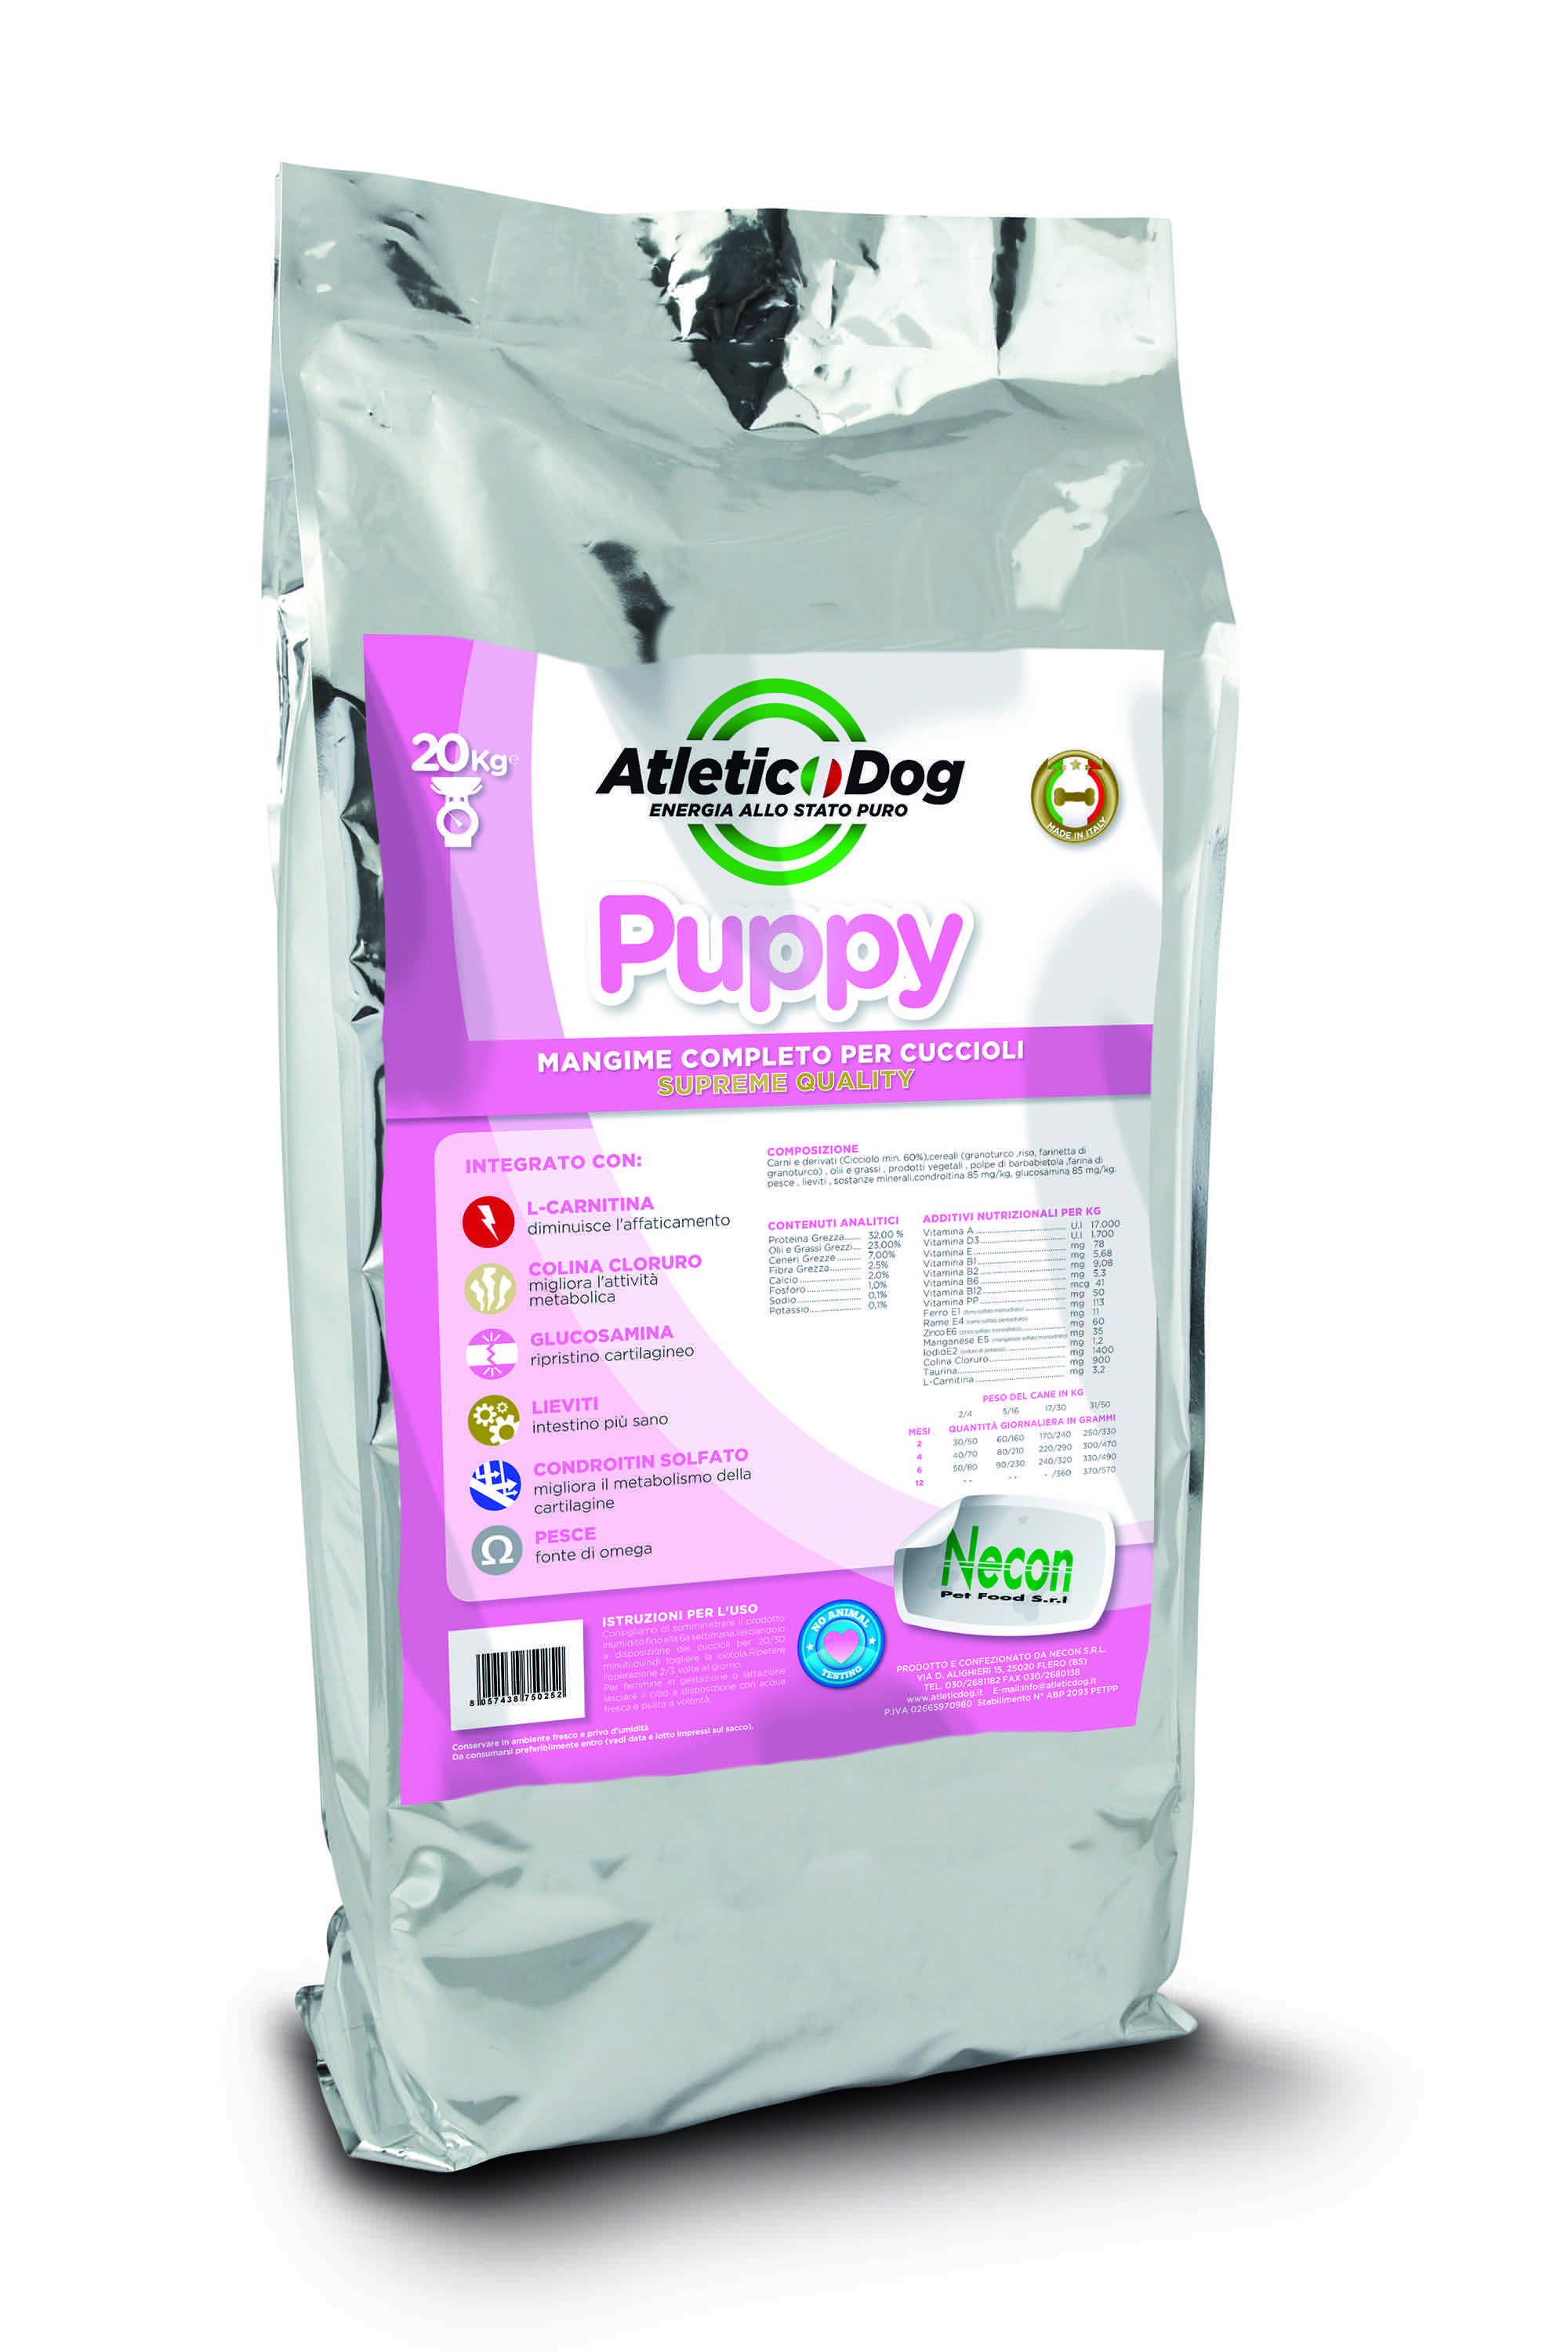 Atletic Dog Puppy Futtersack 20 kg